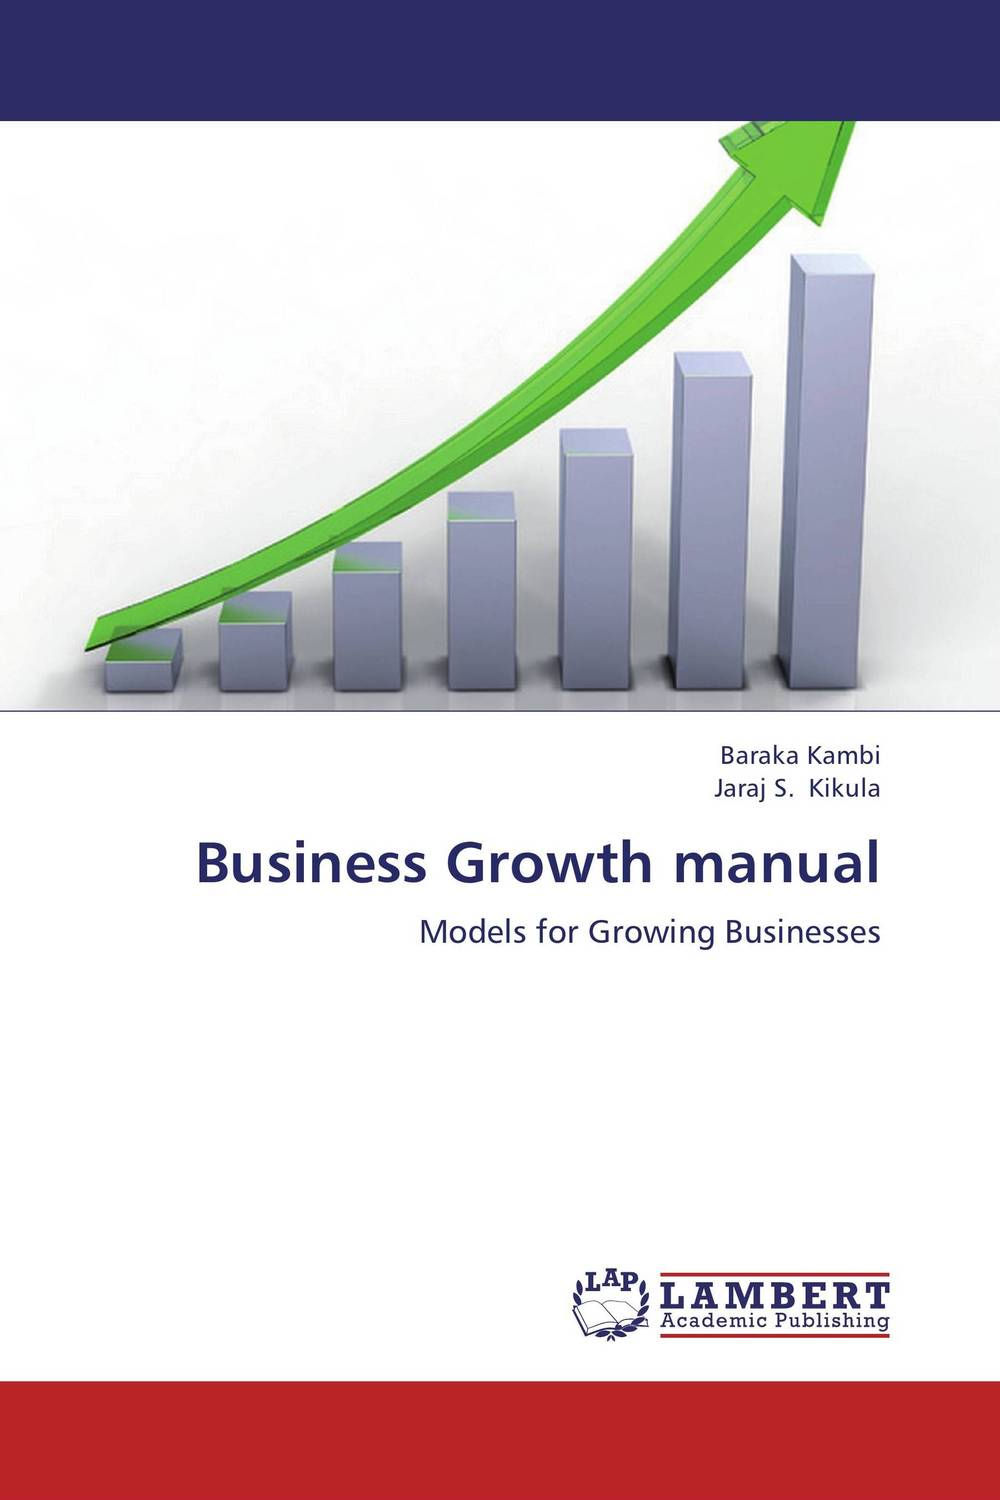 Business Growth manual david rose s the startup checklist 25 steps to a scalable high growth business